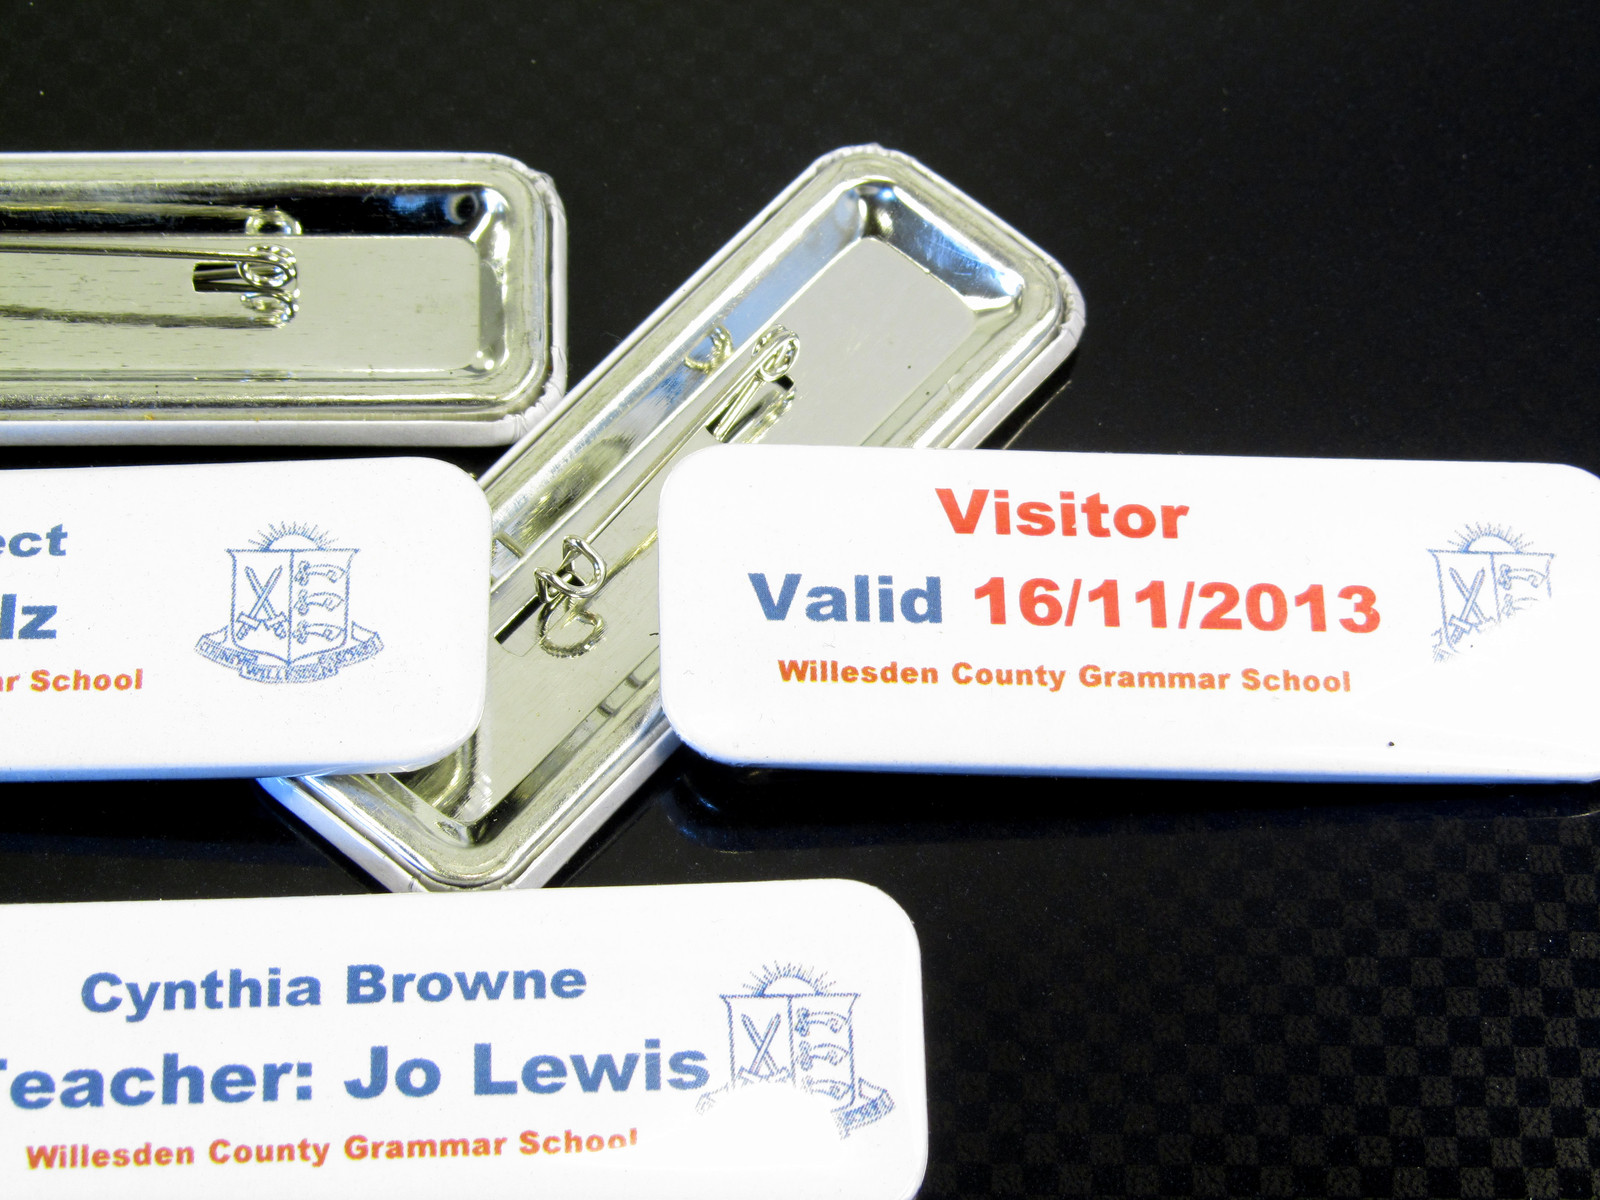 Supermarket or restaurant use? these name badges are excellent